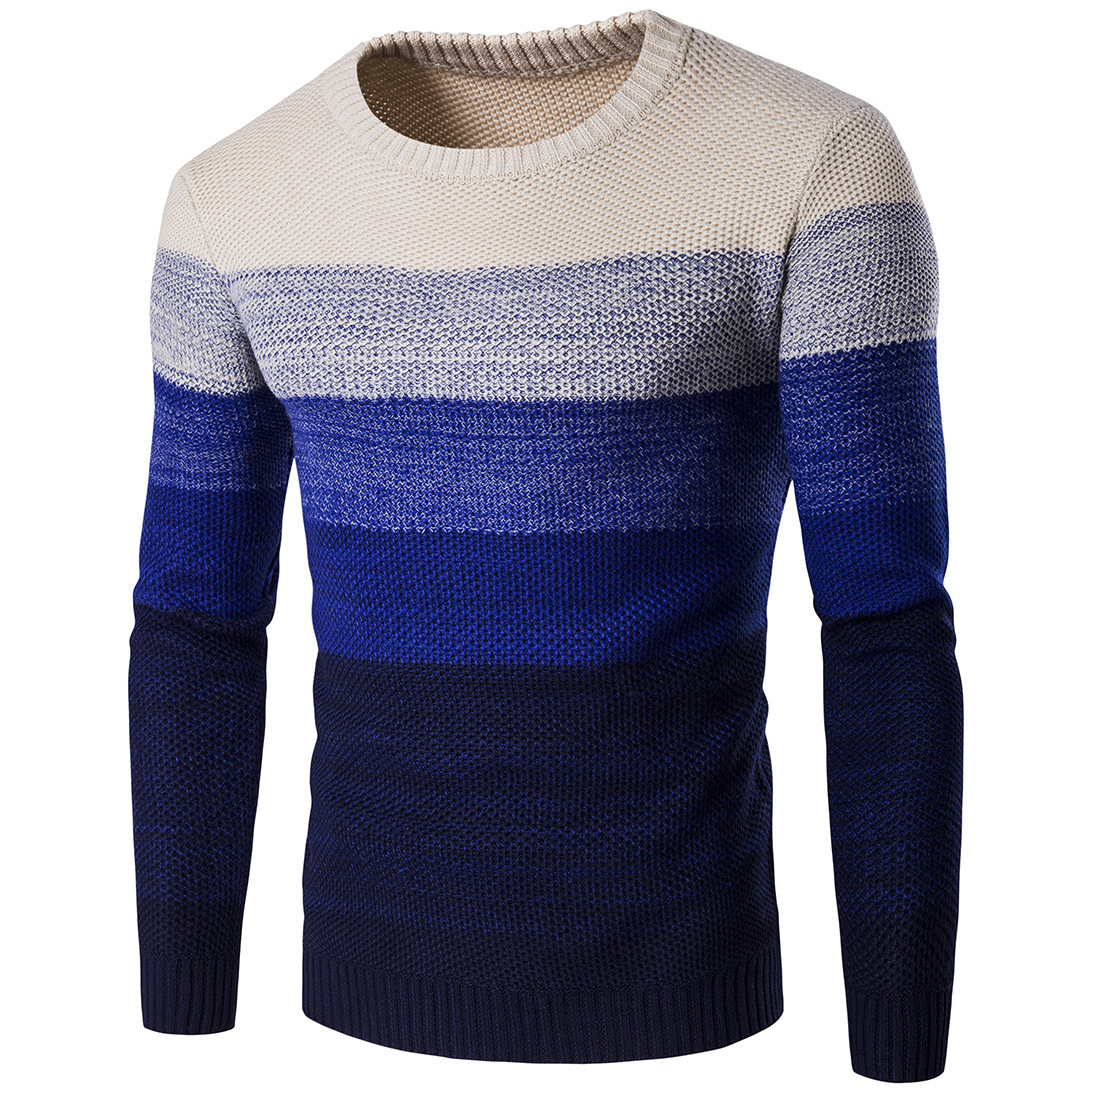 Men Knitted Sweater O Neck Striped Patchwork Casual Long Sleeve Slim Fit Pullover Tops blue